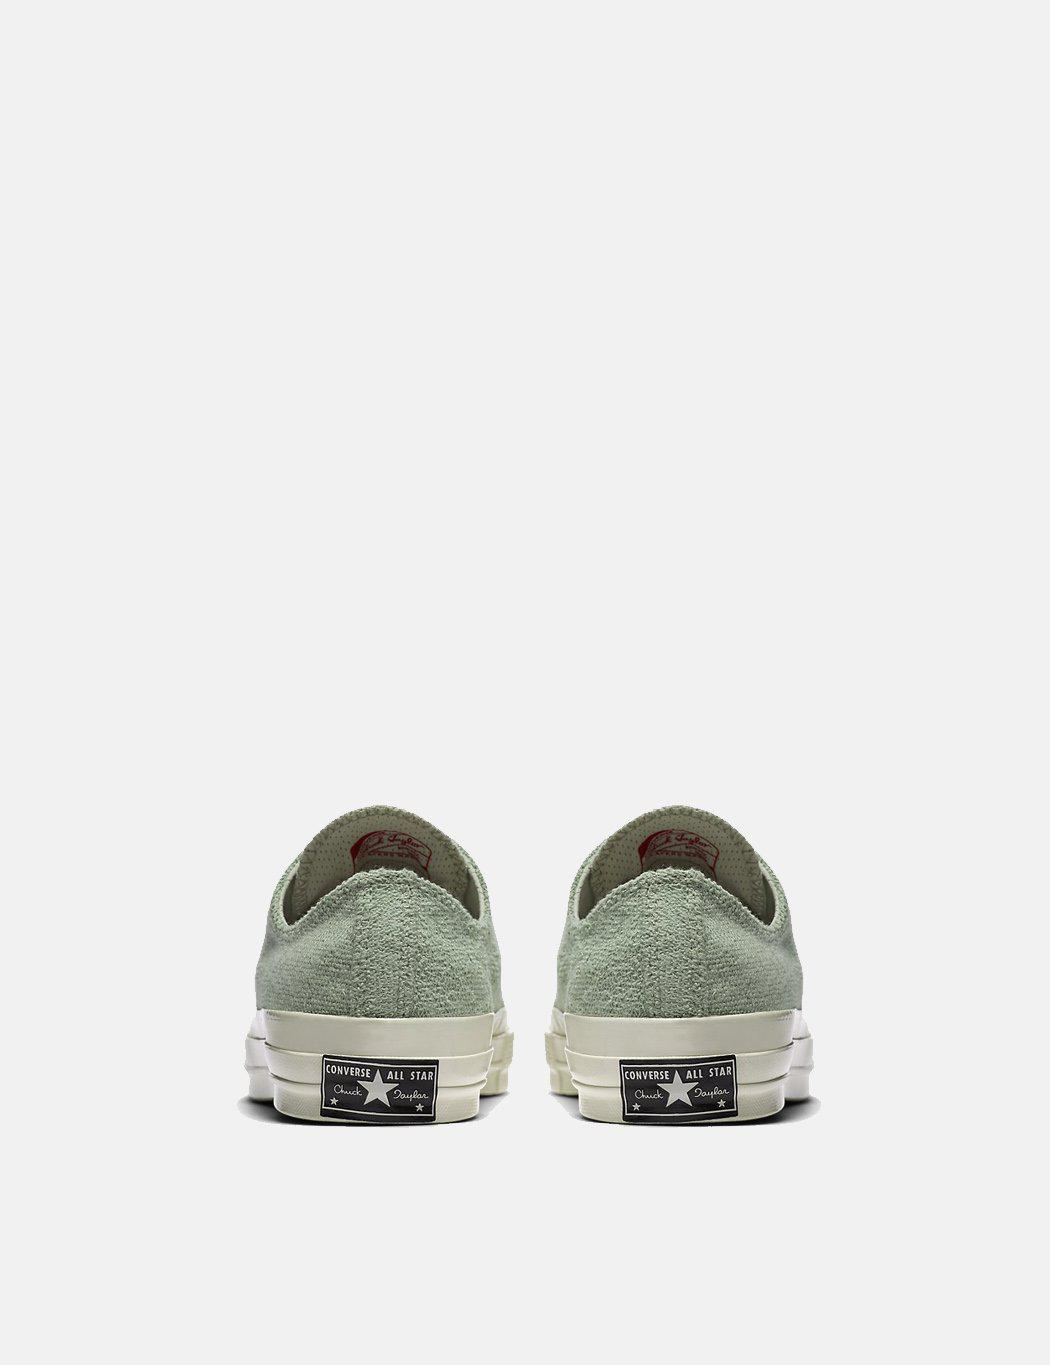 87fd7cf8d43 Lyst - Converse Ctas 70s Chuck Taylor Low Reverse French Terry in ...